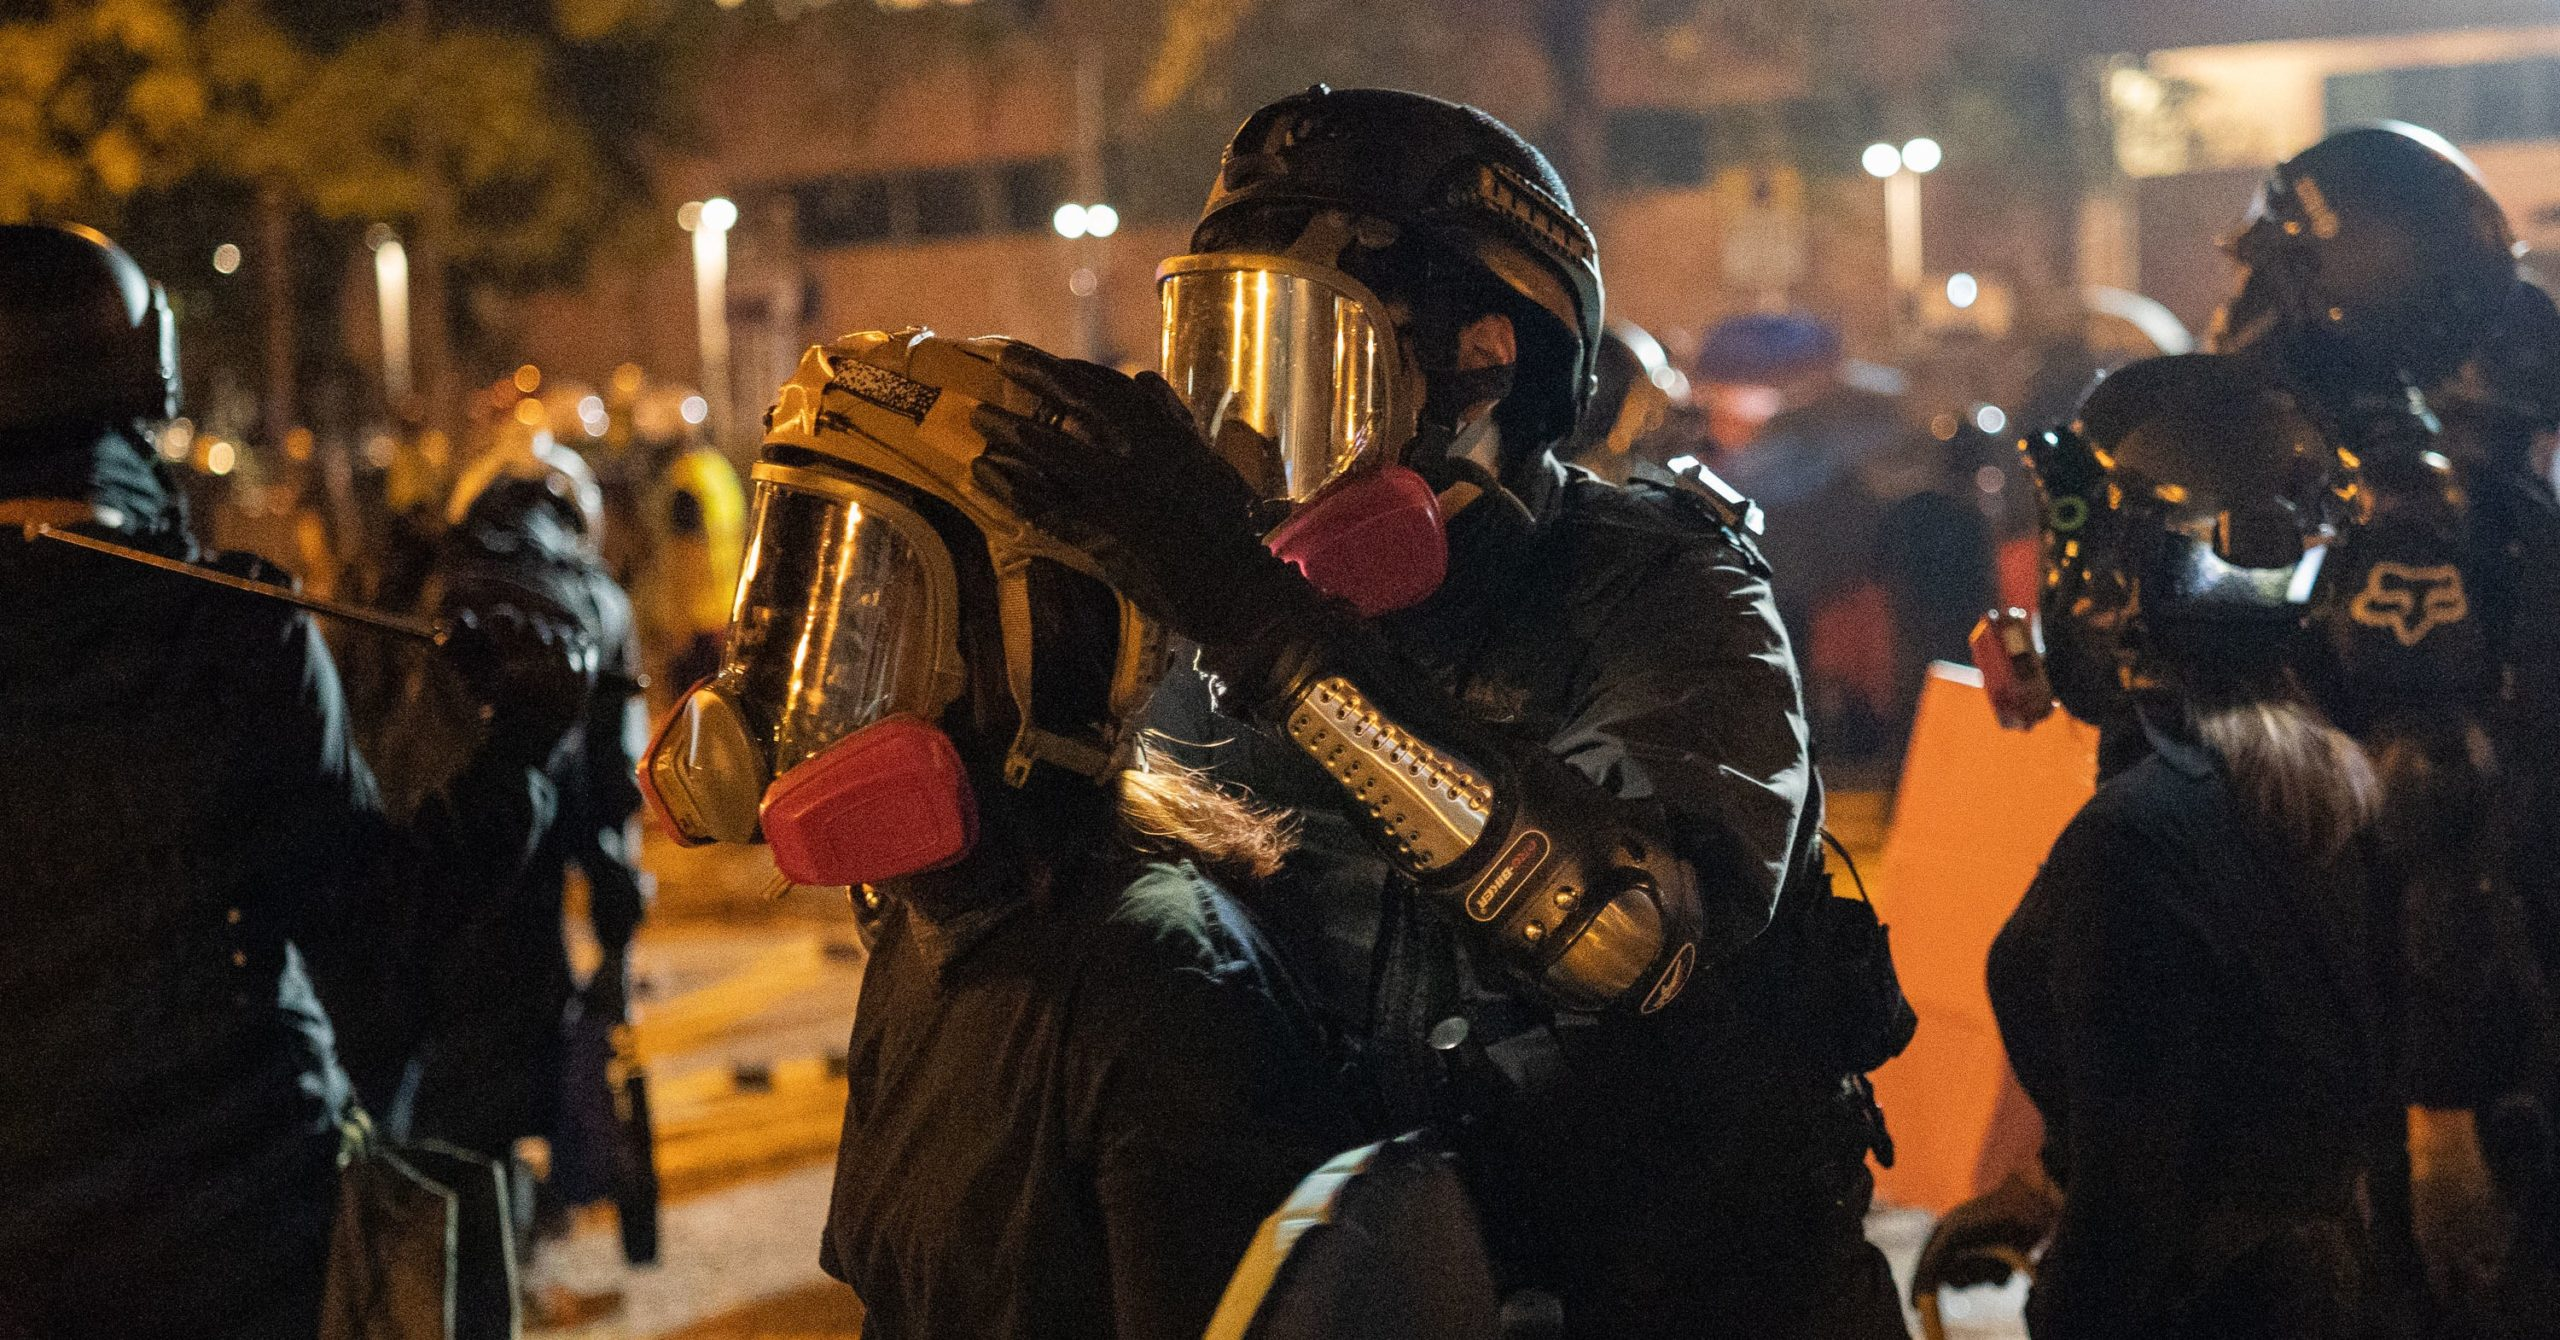 Students And Police Were At War On A Campus Under Siege. The Sewers Were The Only Escape